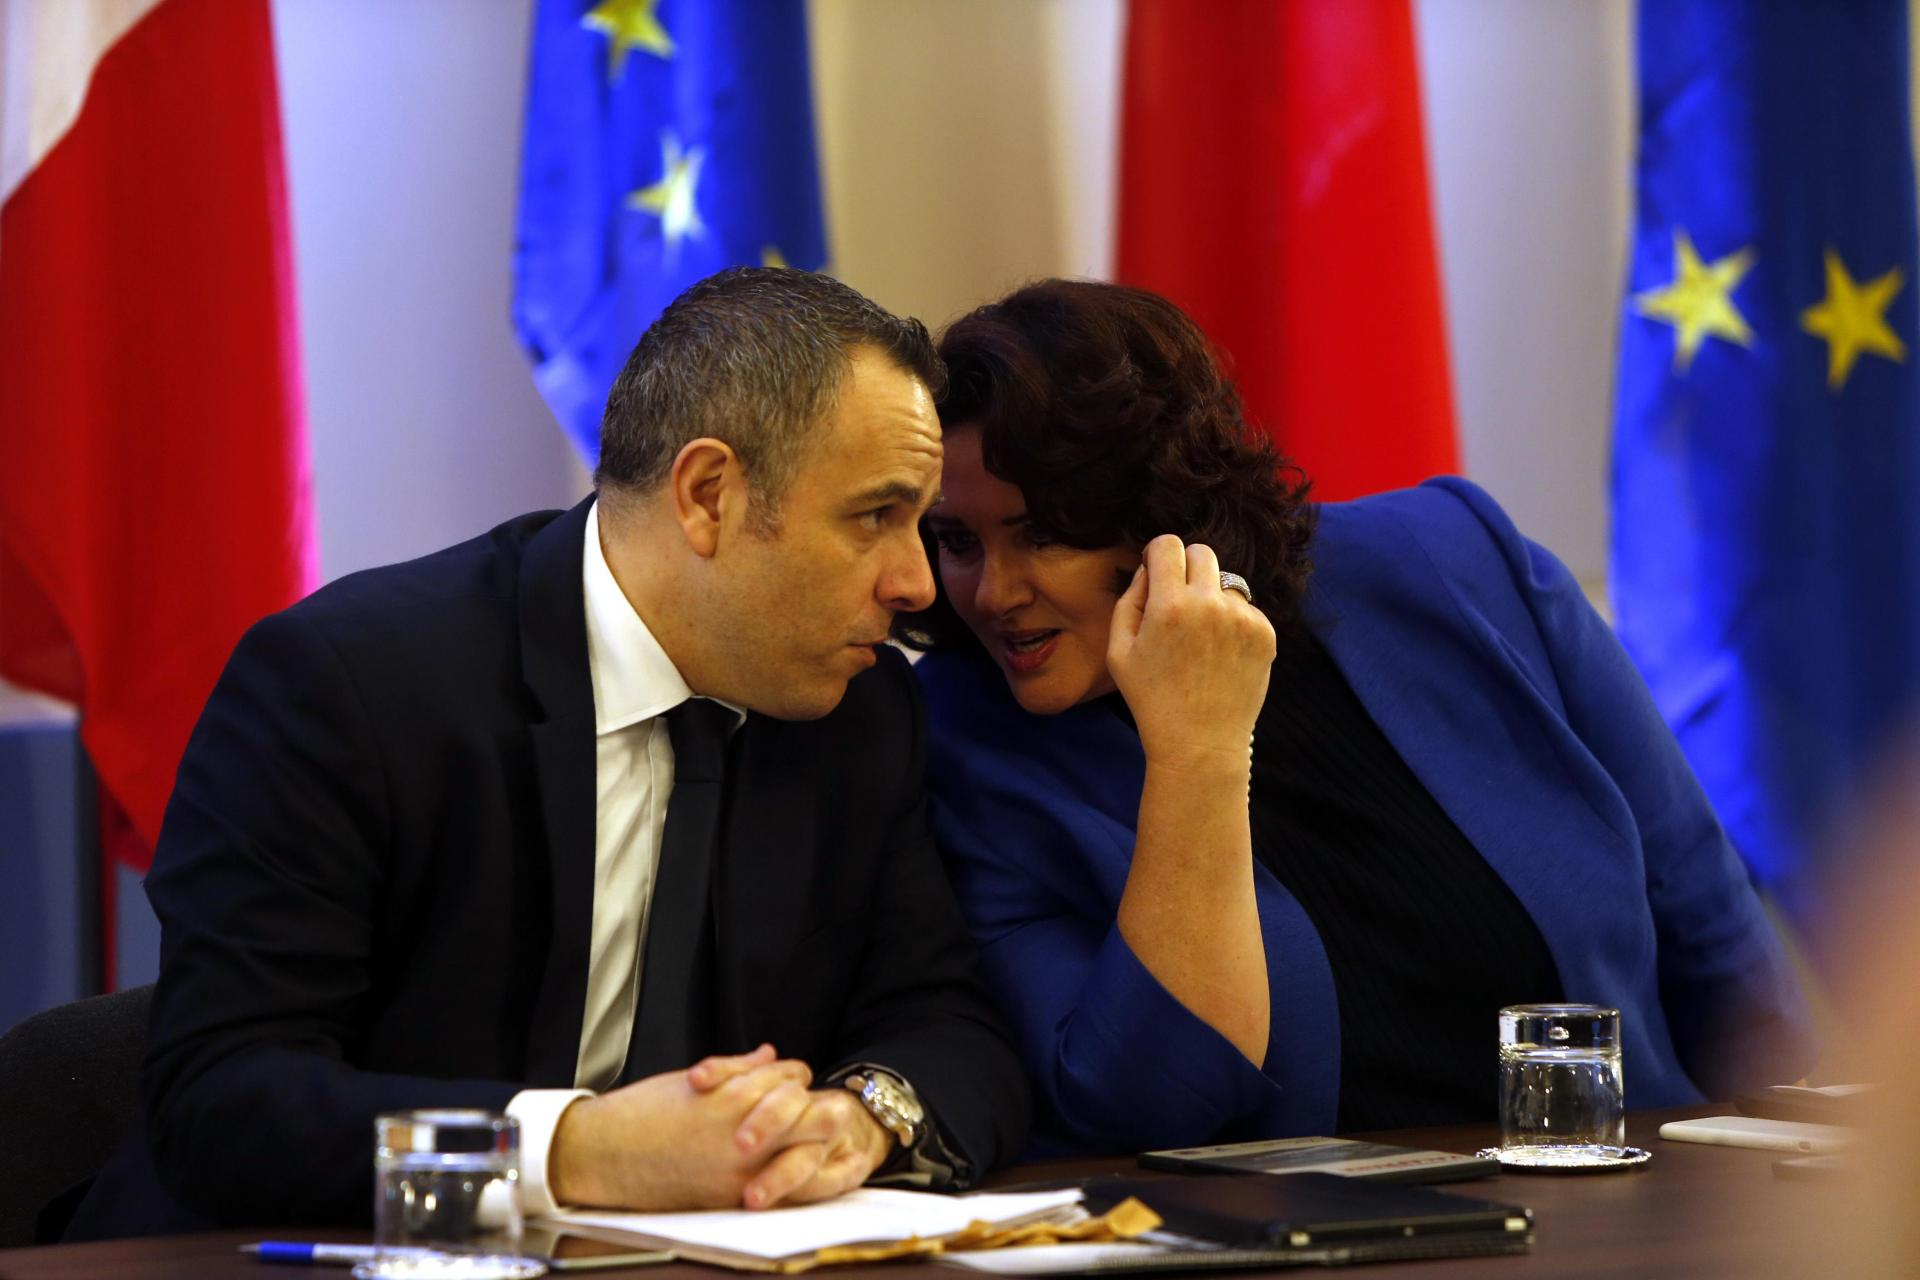 Keith Schembri pictured in 2016 with Helena Dalli, now Malta's European Commissioner-designate. Photo: Darren Zammit Lupi